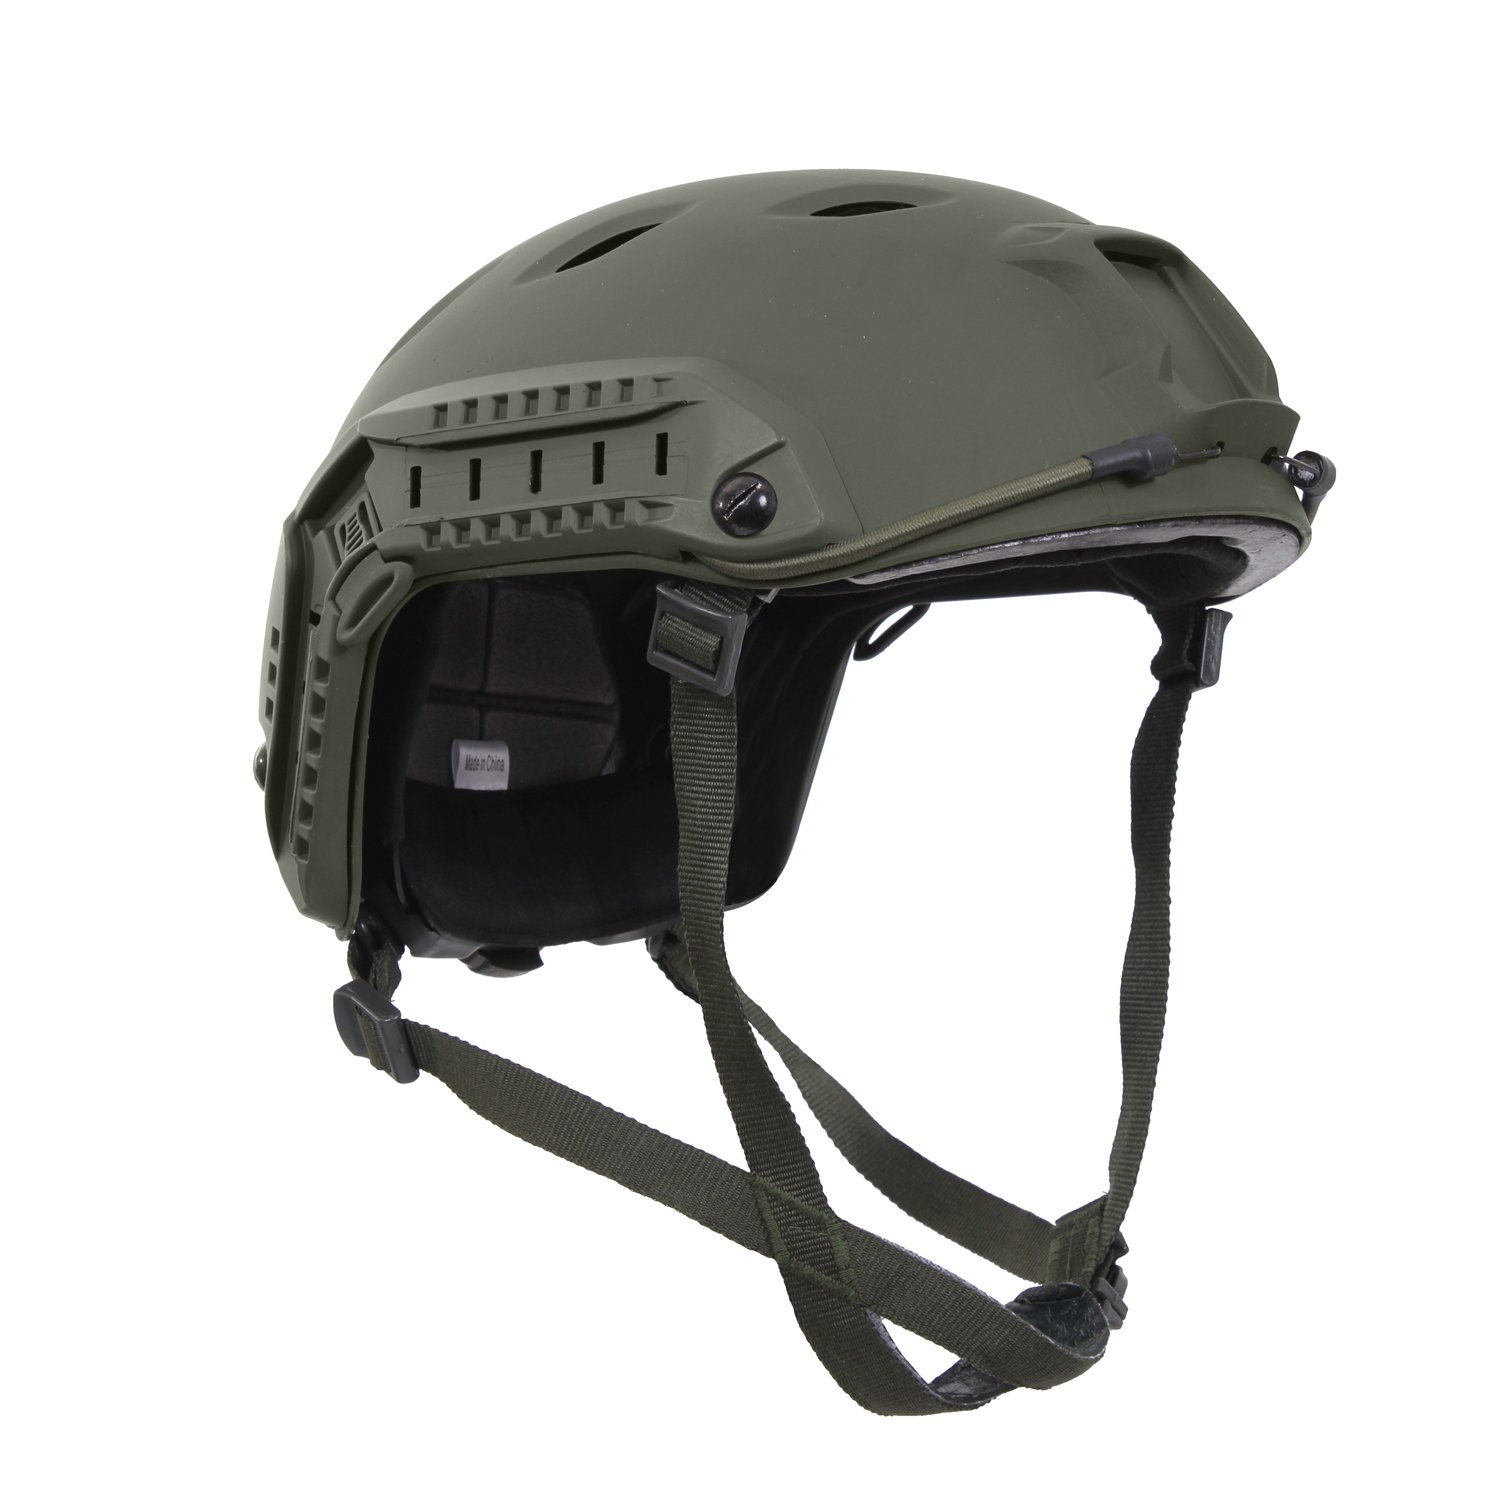 Rothco Advanced Tactical Adjustable Airsoft Helmet, Olive Drab by Rothco